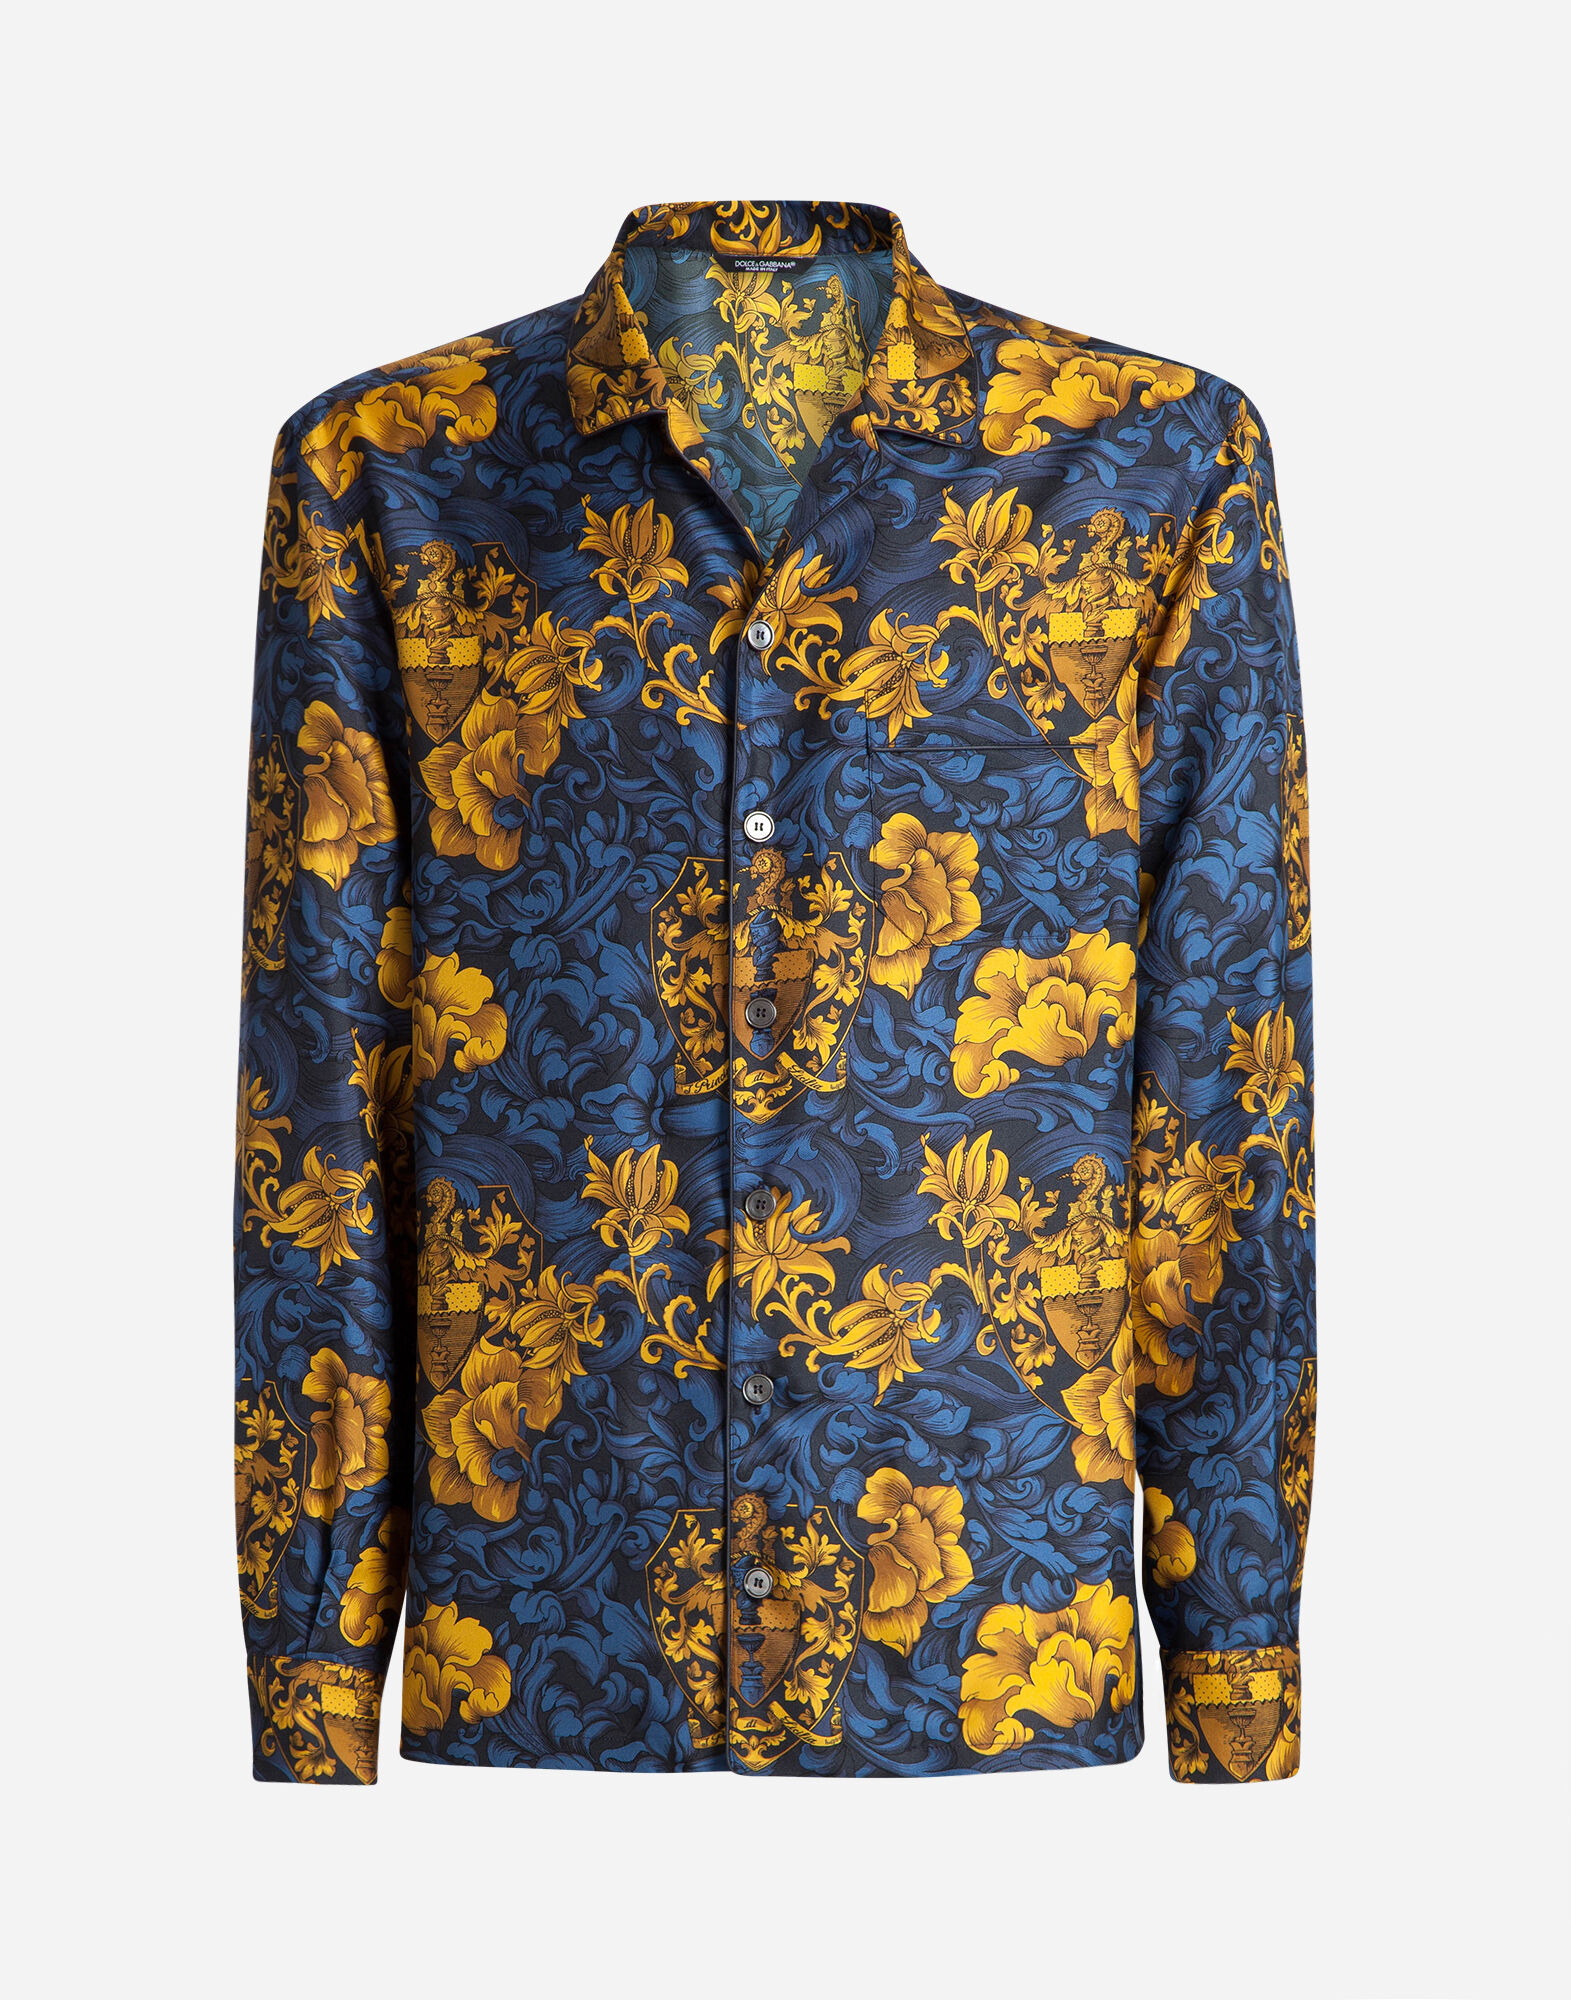 PYJAMA SHIRT IN PRINTED SILK